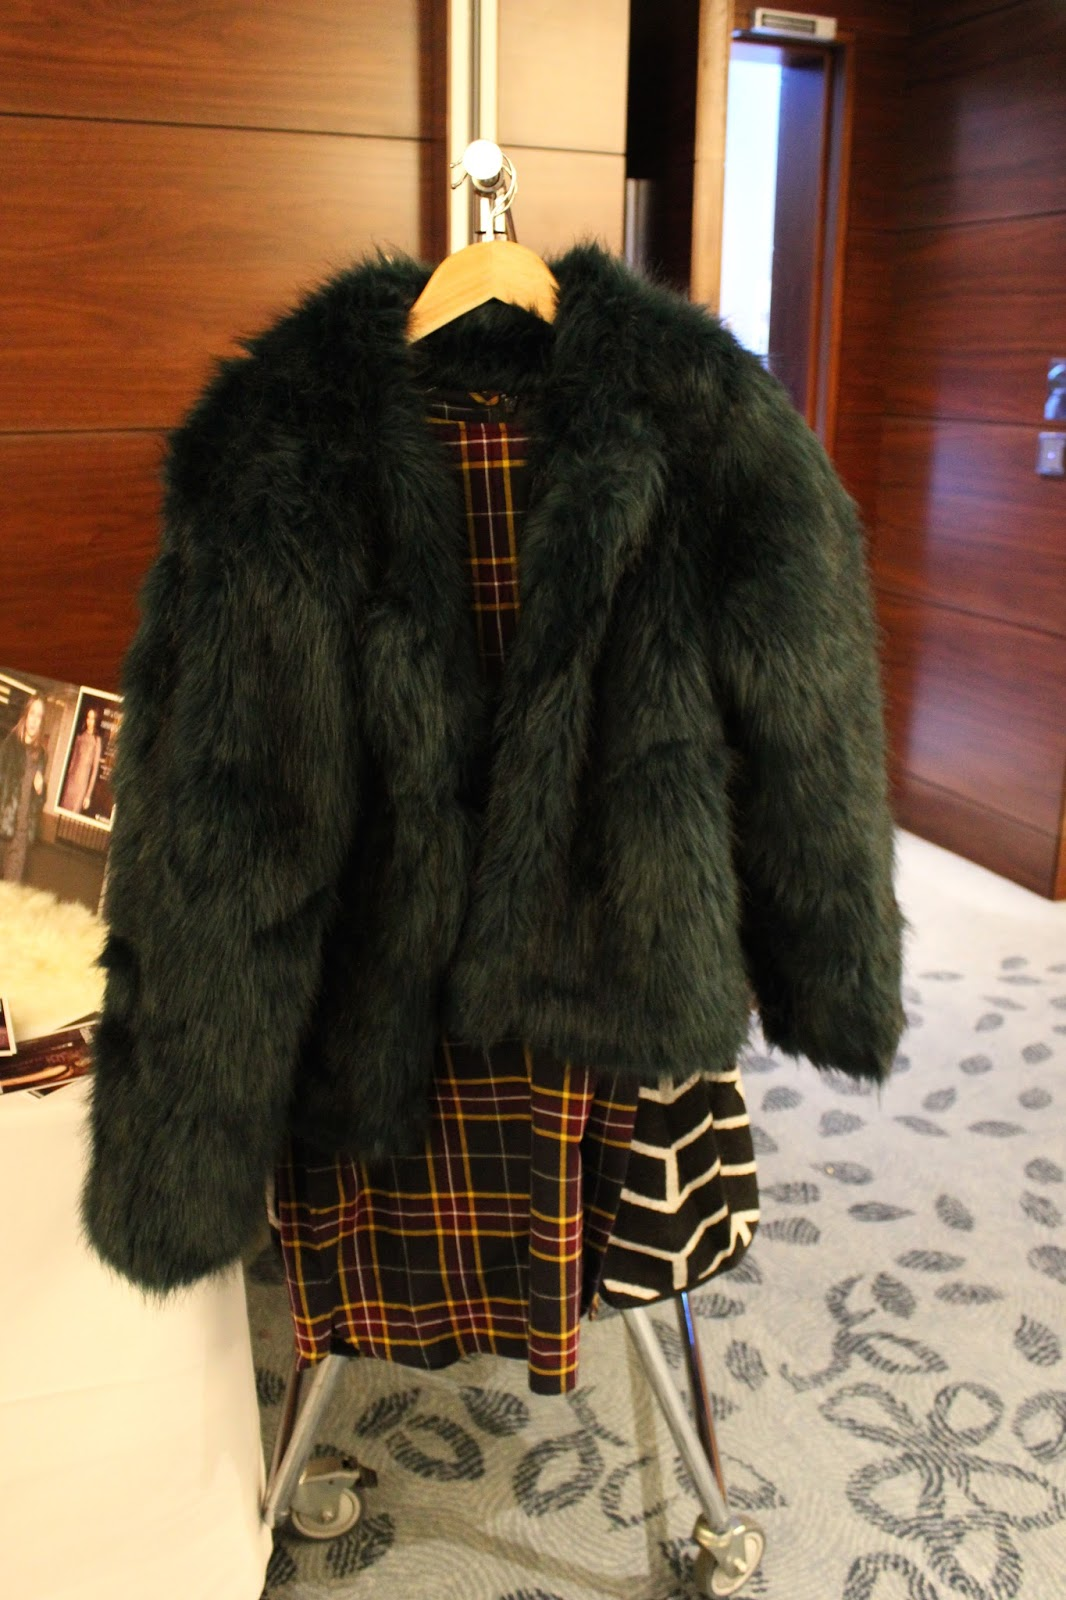 Georgie Minter-Brown actress blogger lifestyle press event bloggers festival scarlett london fashion fur coat